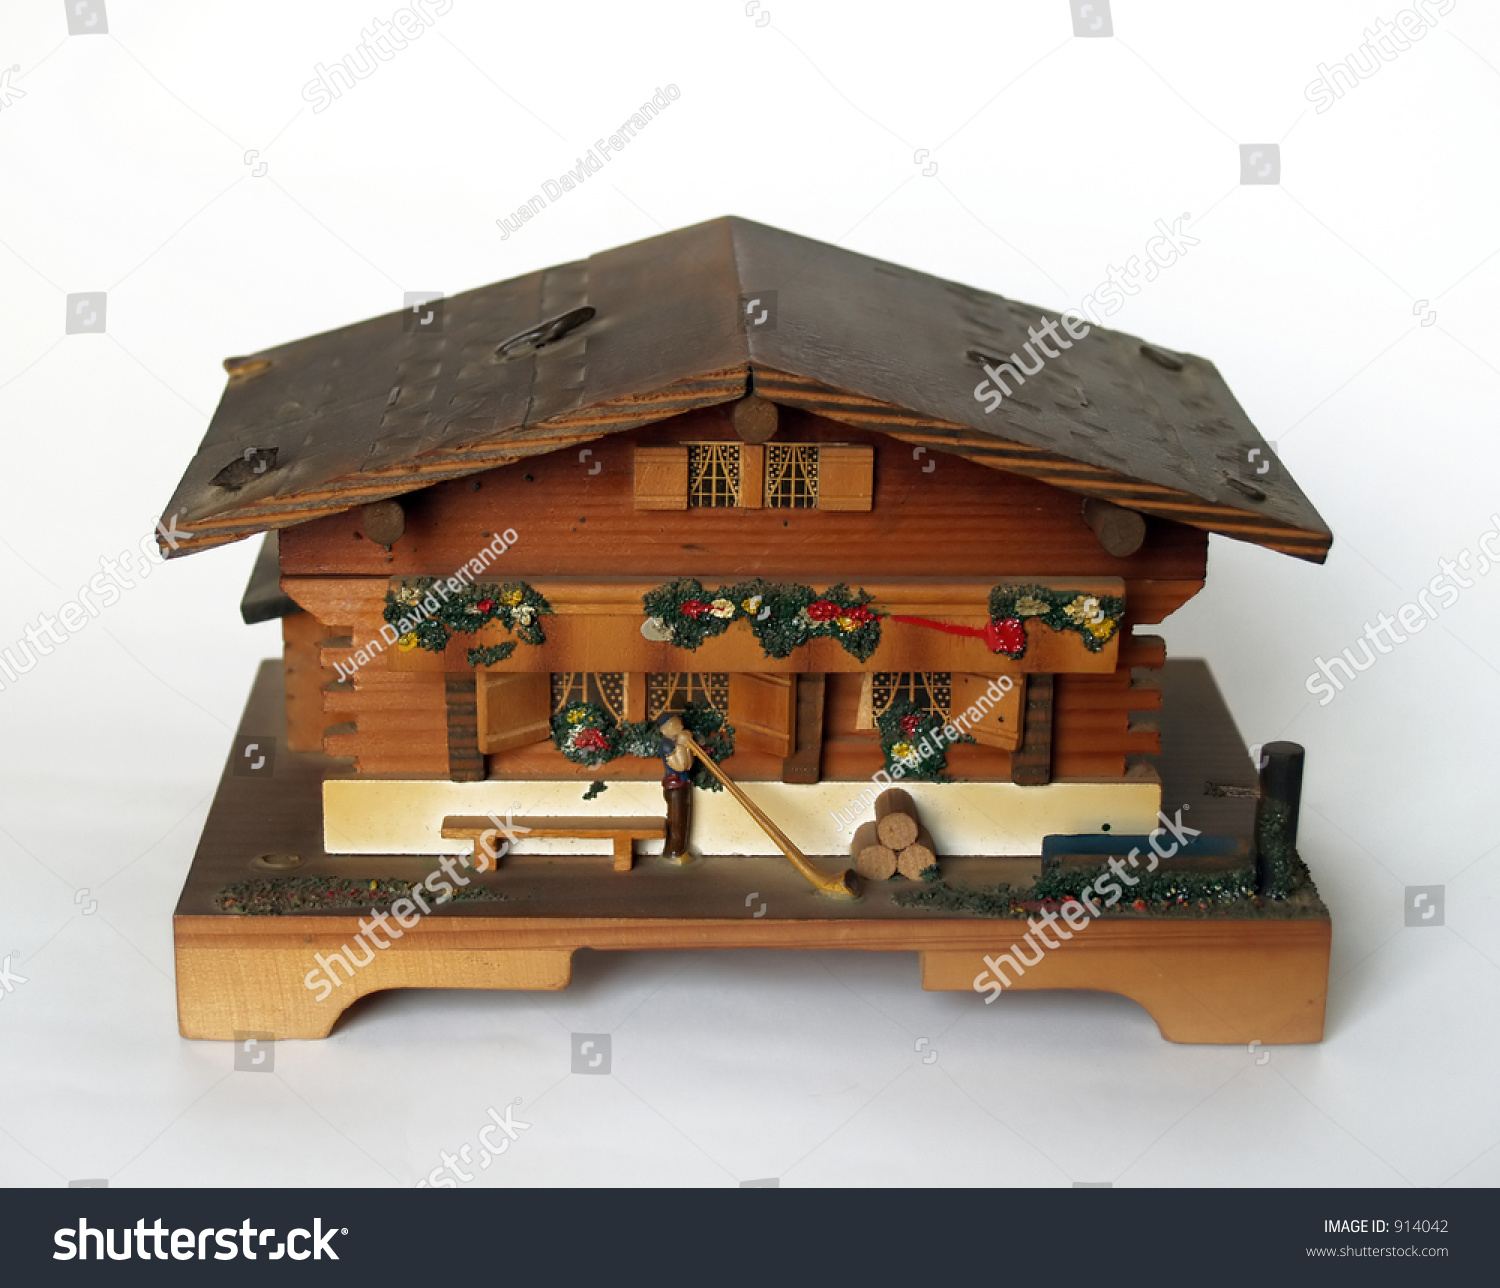 Music boxclassic tirol house stock photo 914042 shutterstock for Old house music classics